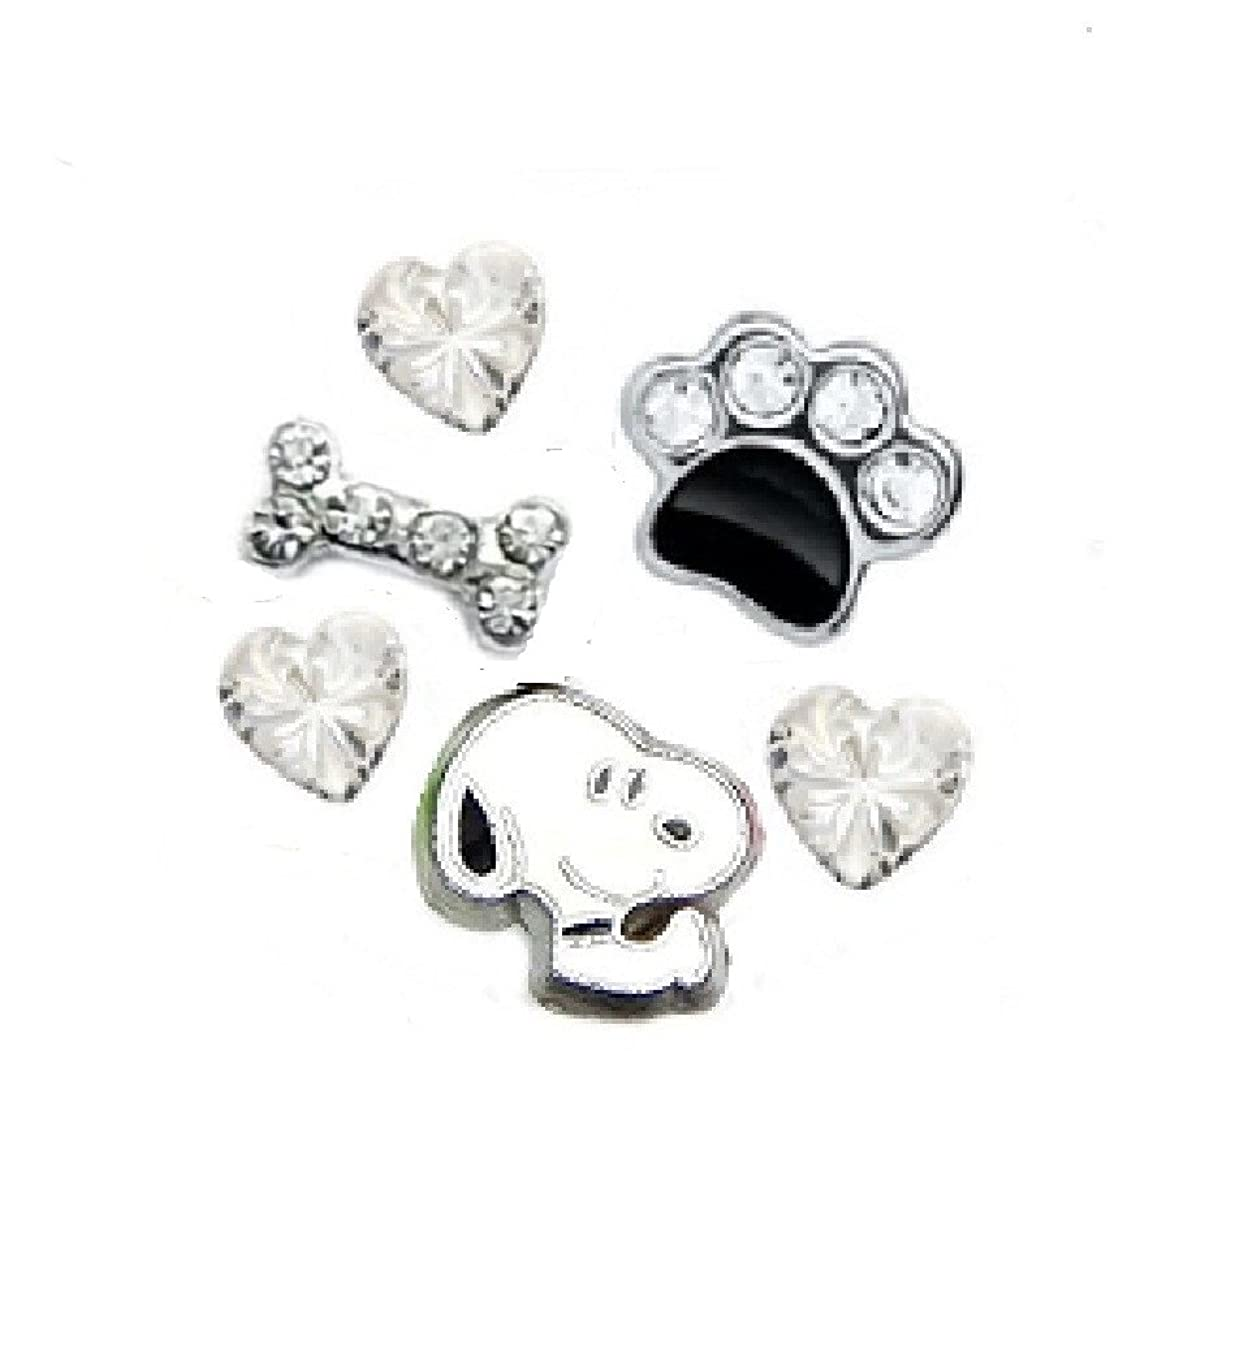 Cherityne Snoopy Dog Themed Set of 6 Floating Chams for Locket Pendants